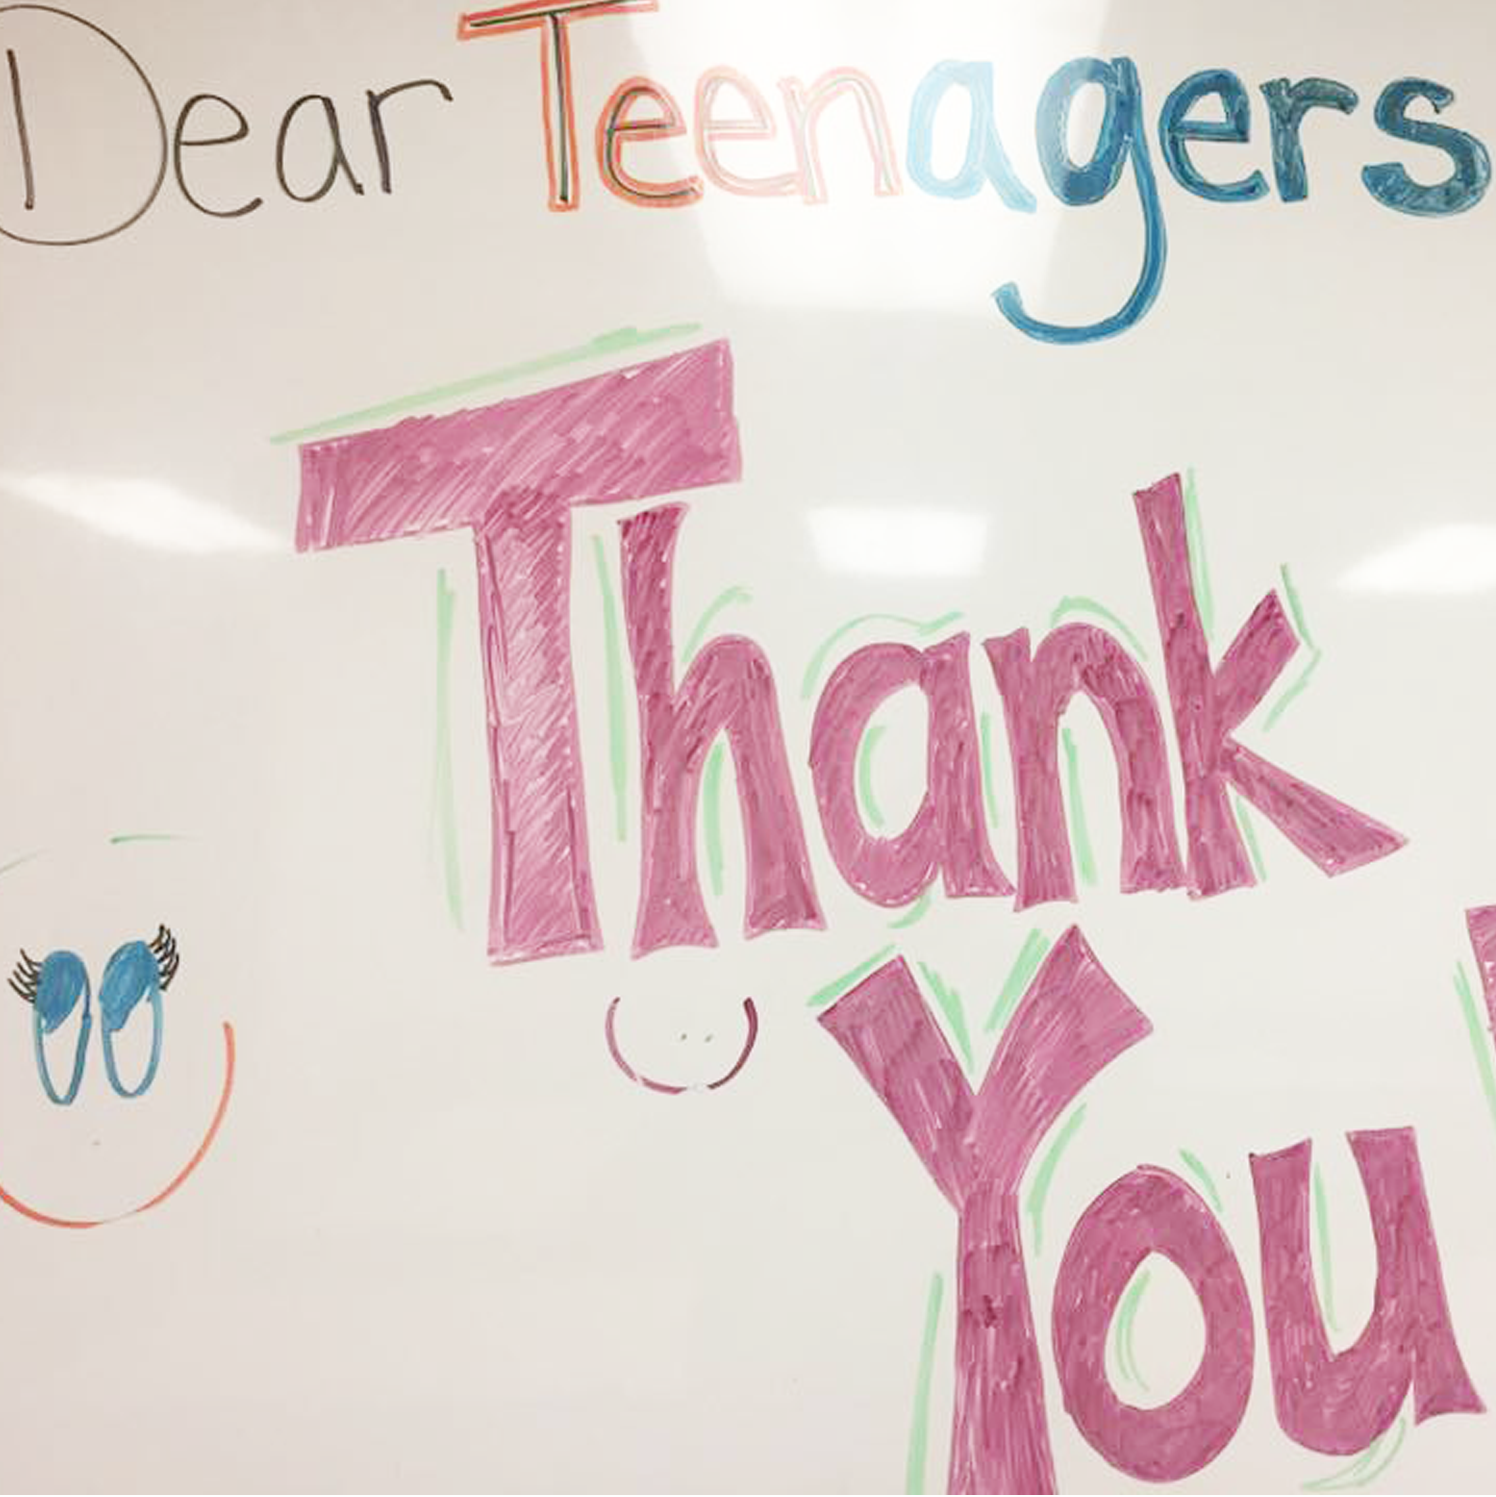 """Dear Teenagers THANK YOU!"" whiteboard message from SFPL library staff to teen volunteers"